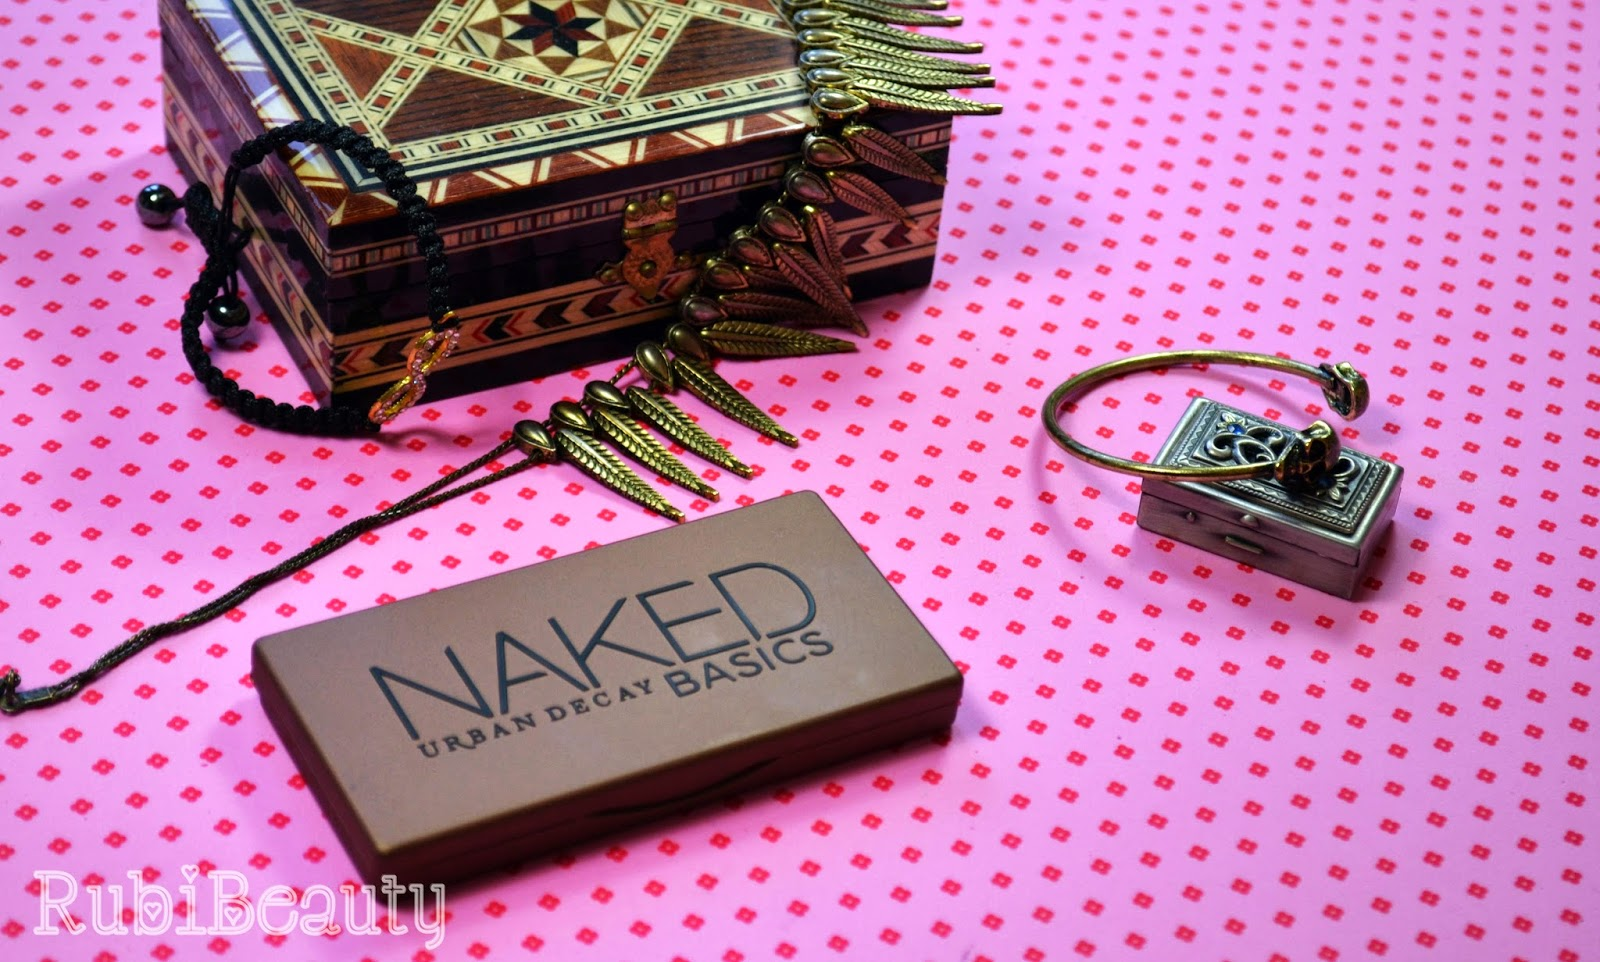 rubibeauty review paleta naked basics urban decay clon buyincoins